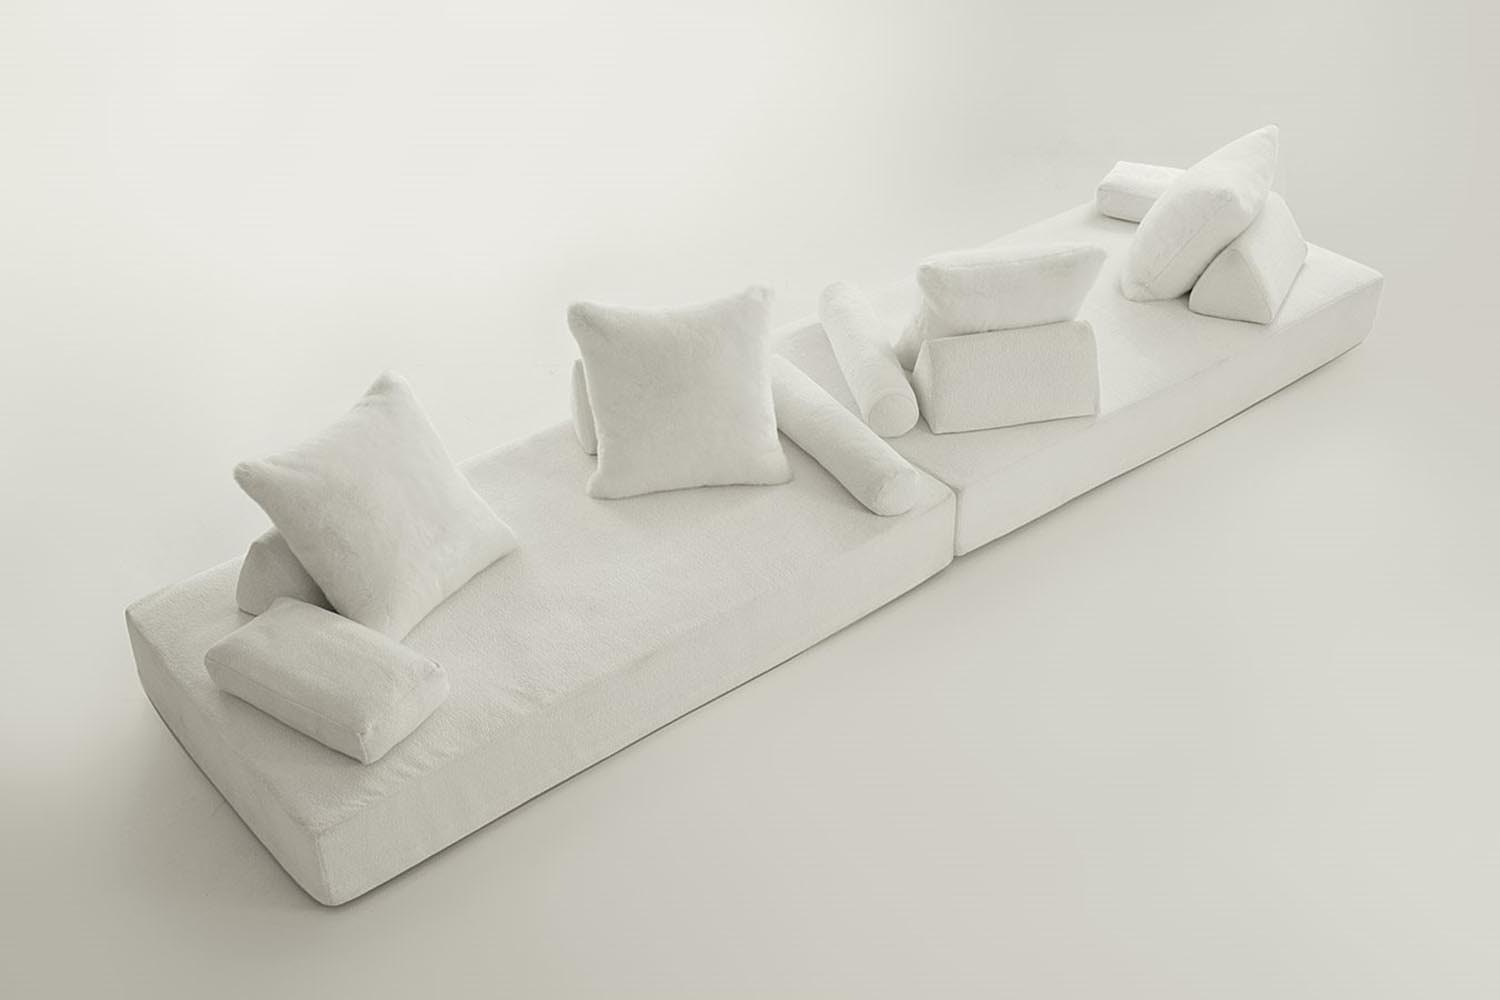 Sherazade Sofa by Francesco Binfare for Edra